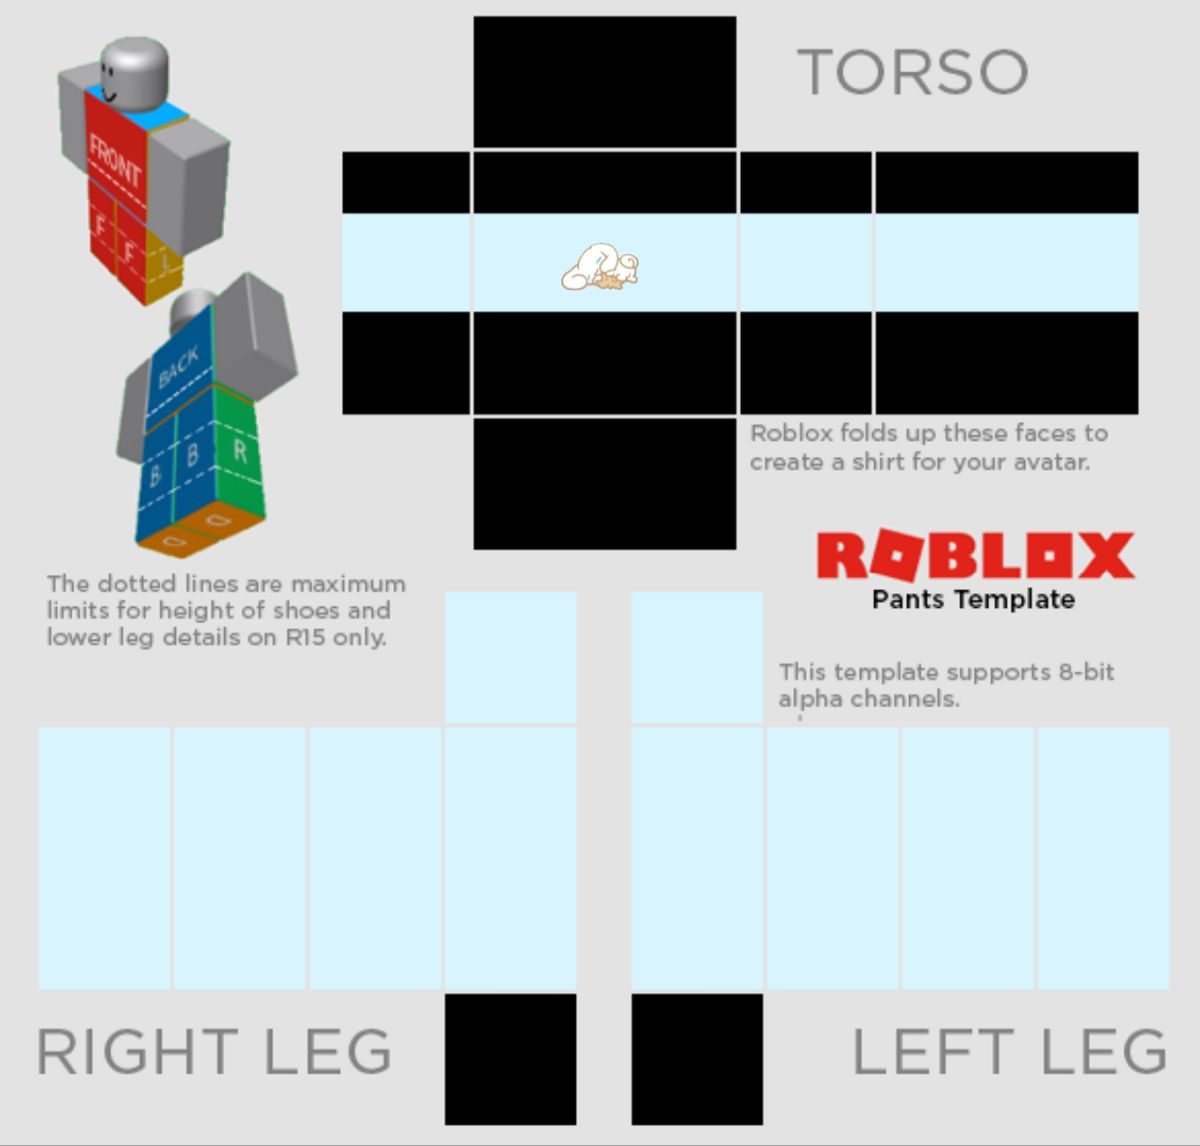 30+ Best roblox images in 2020 | roblox, roblox shirt